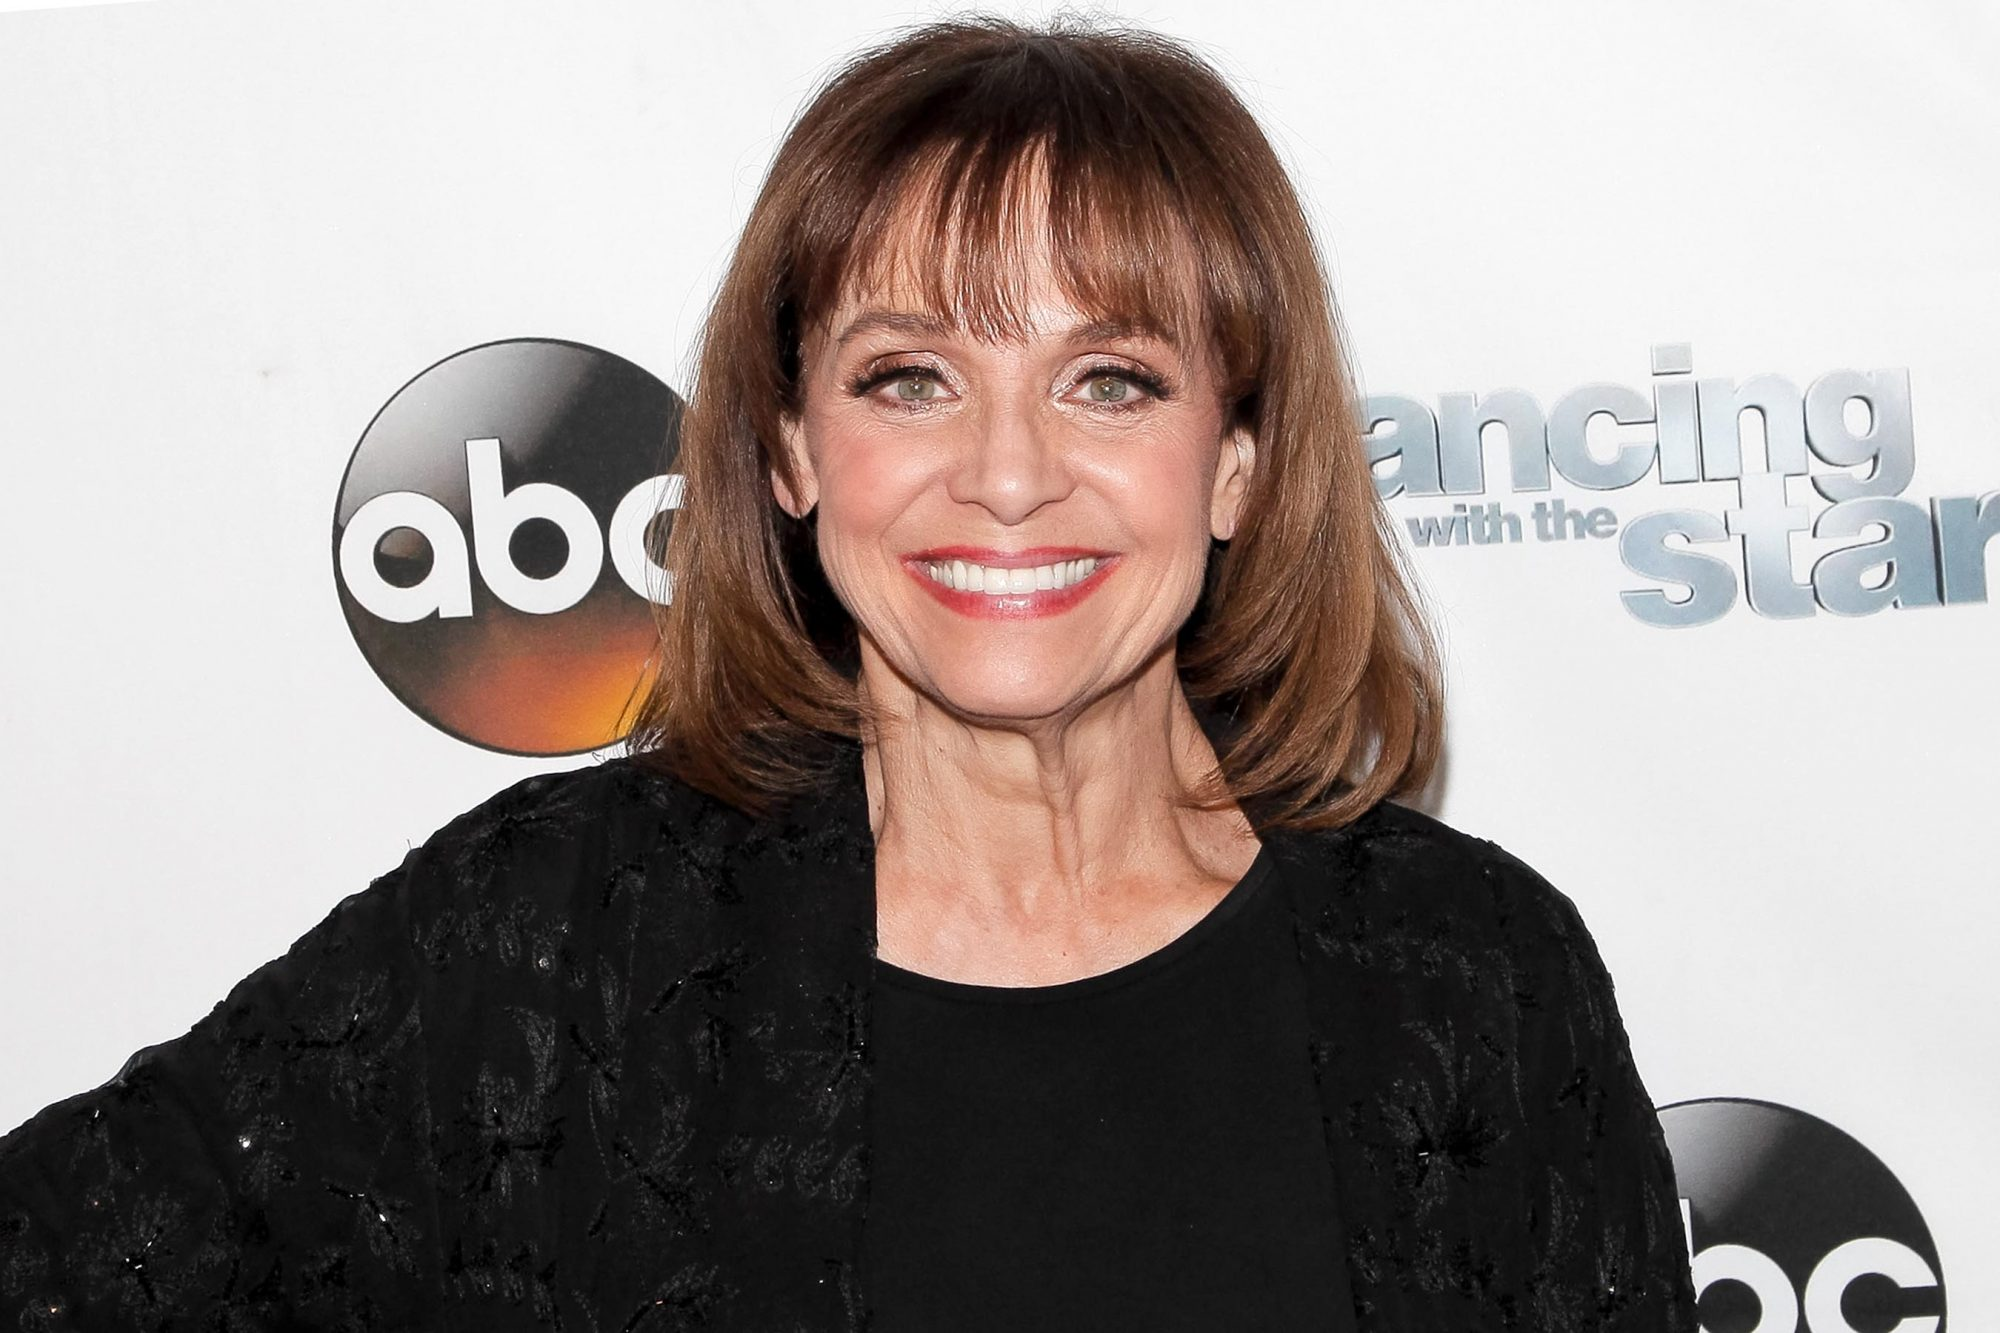 LOS ANGELES, CA - NOVEMBER 26: Valerie Harper attends the 'Dancing With The Stars' wrap party at Sofitel Hotel on November 26, 2013 in Los Angeles, California. (Photo by Tibrina Hobson/WireImage)